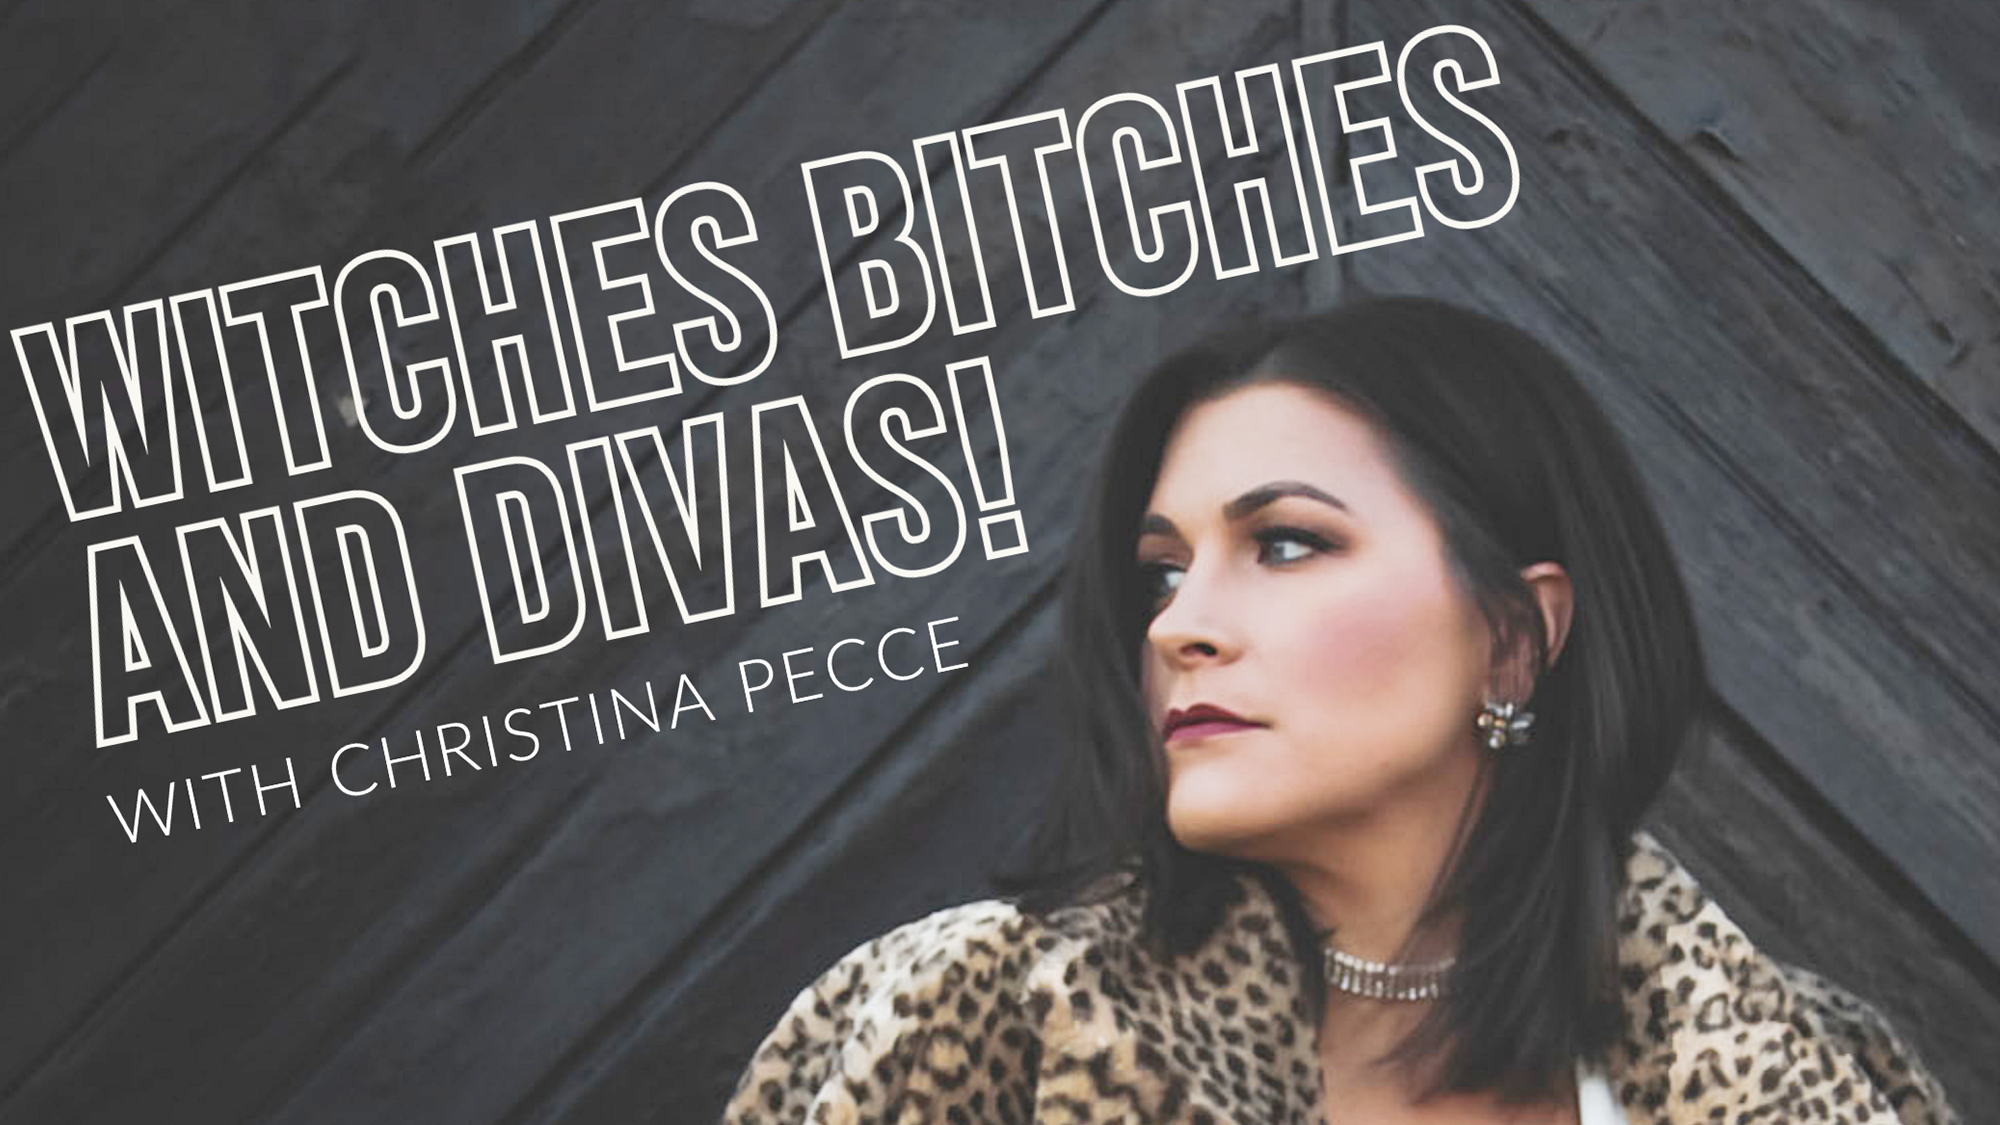 Witches, Bitches, and Divas with Christina Pecce